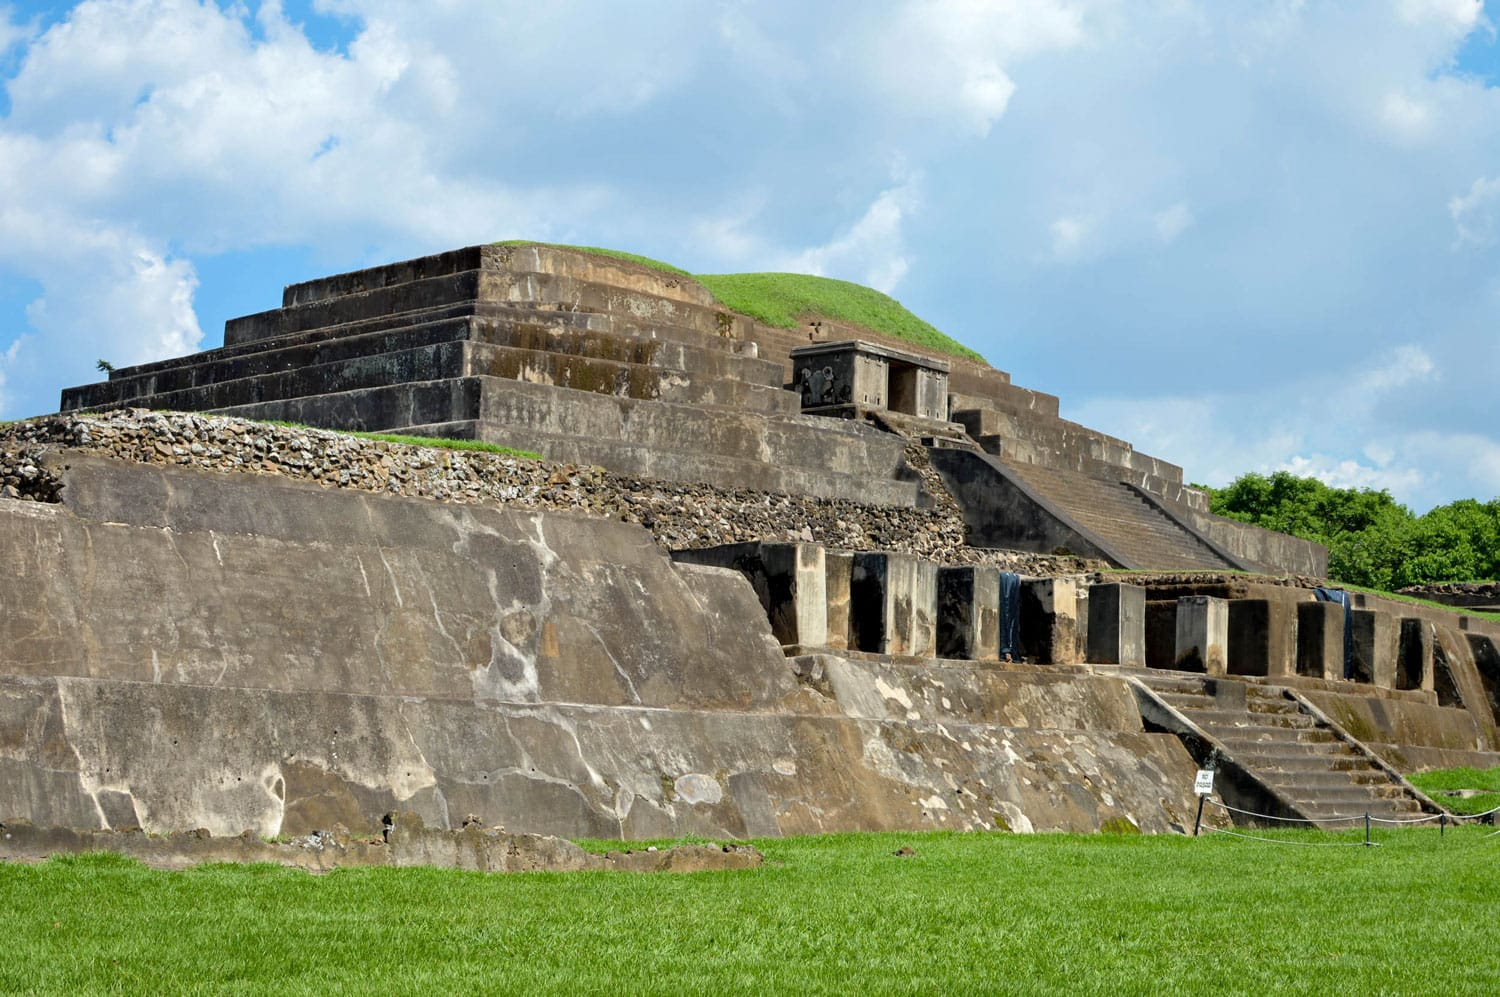 Tazumal archaeological site of Maya civilization in El Salvador